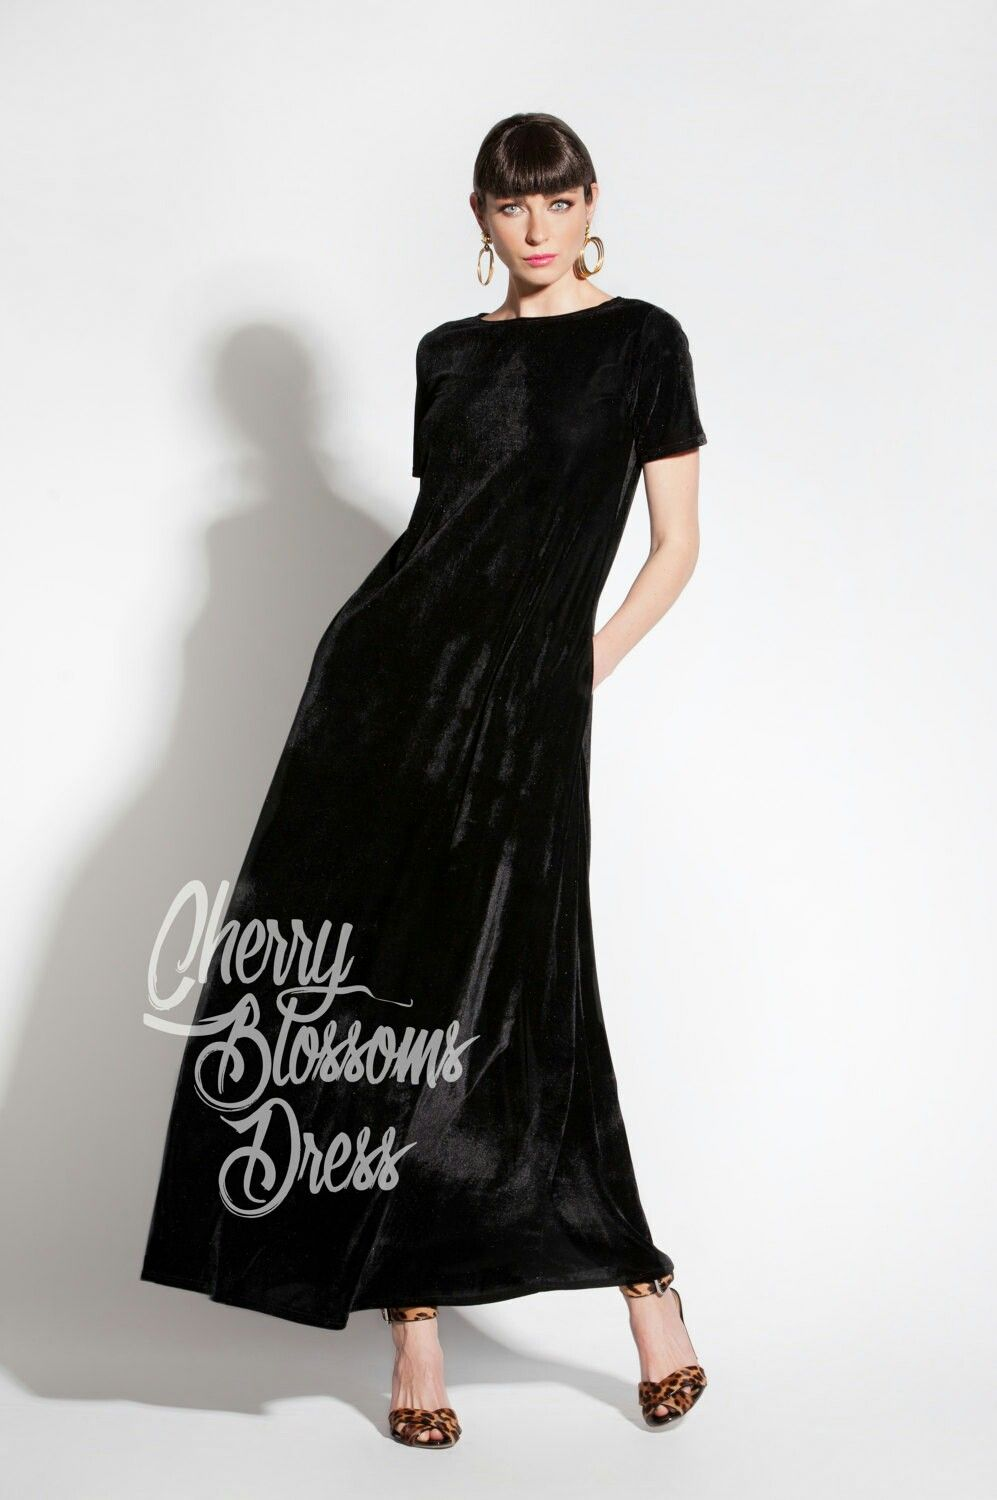 Excited to share the latest addition to my etsy shop black maxi